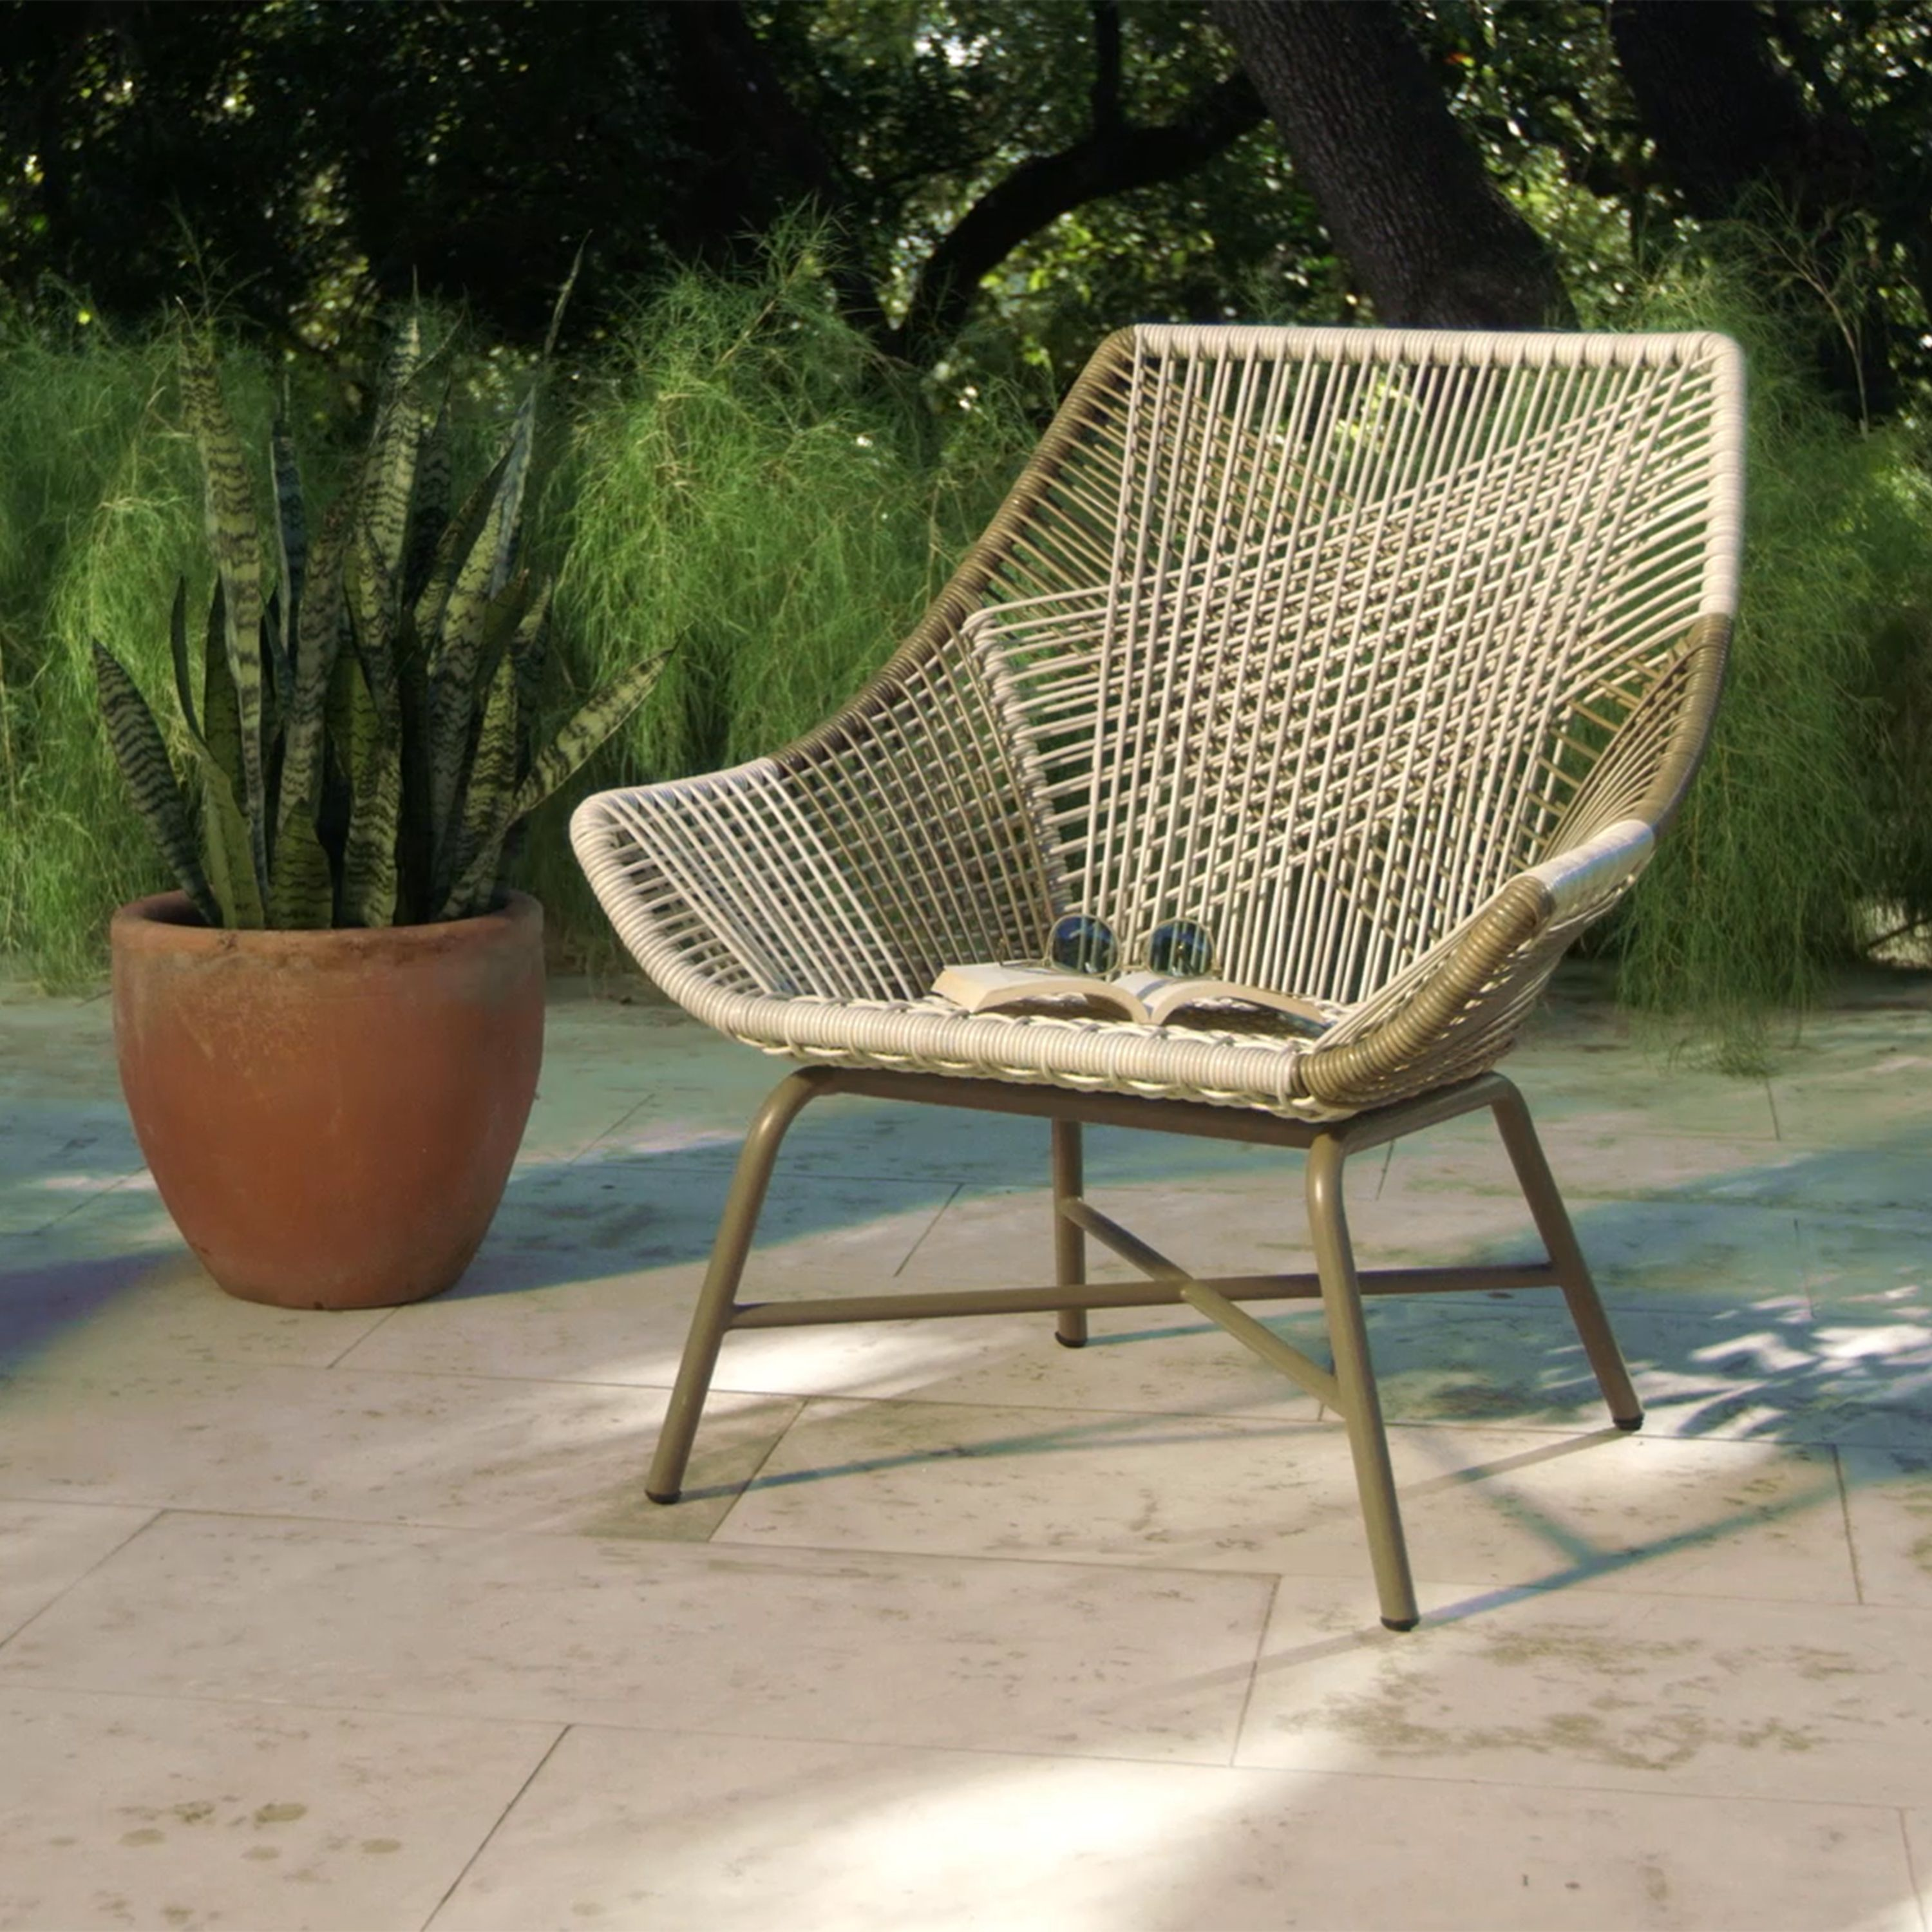 Standing On Iron Legs Our Lounge Chair Is Crafted Of